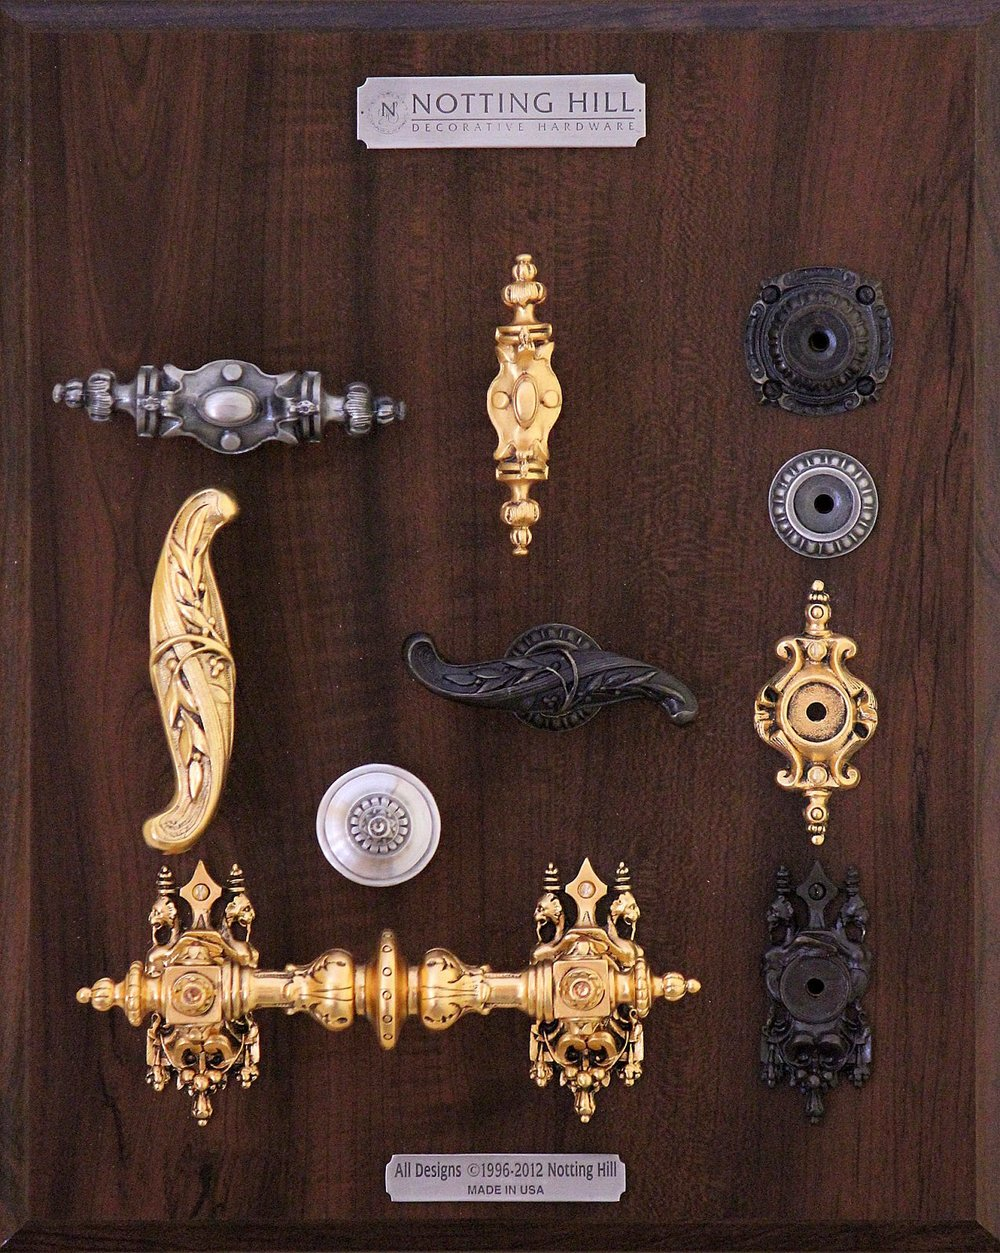 Pembridge Pull, Pembridge Knob, Queensway Back Plate, Kensington Back Plate, Chelsea Pull, Chelsea Knob; Pembridge Back Plate, Portobello Road Knob, Pull, 3 Griffin Back Plates.